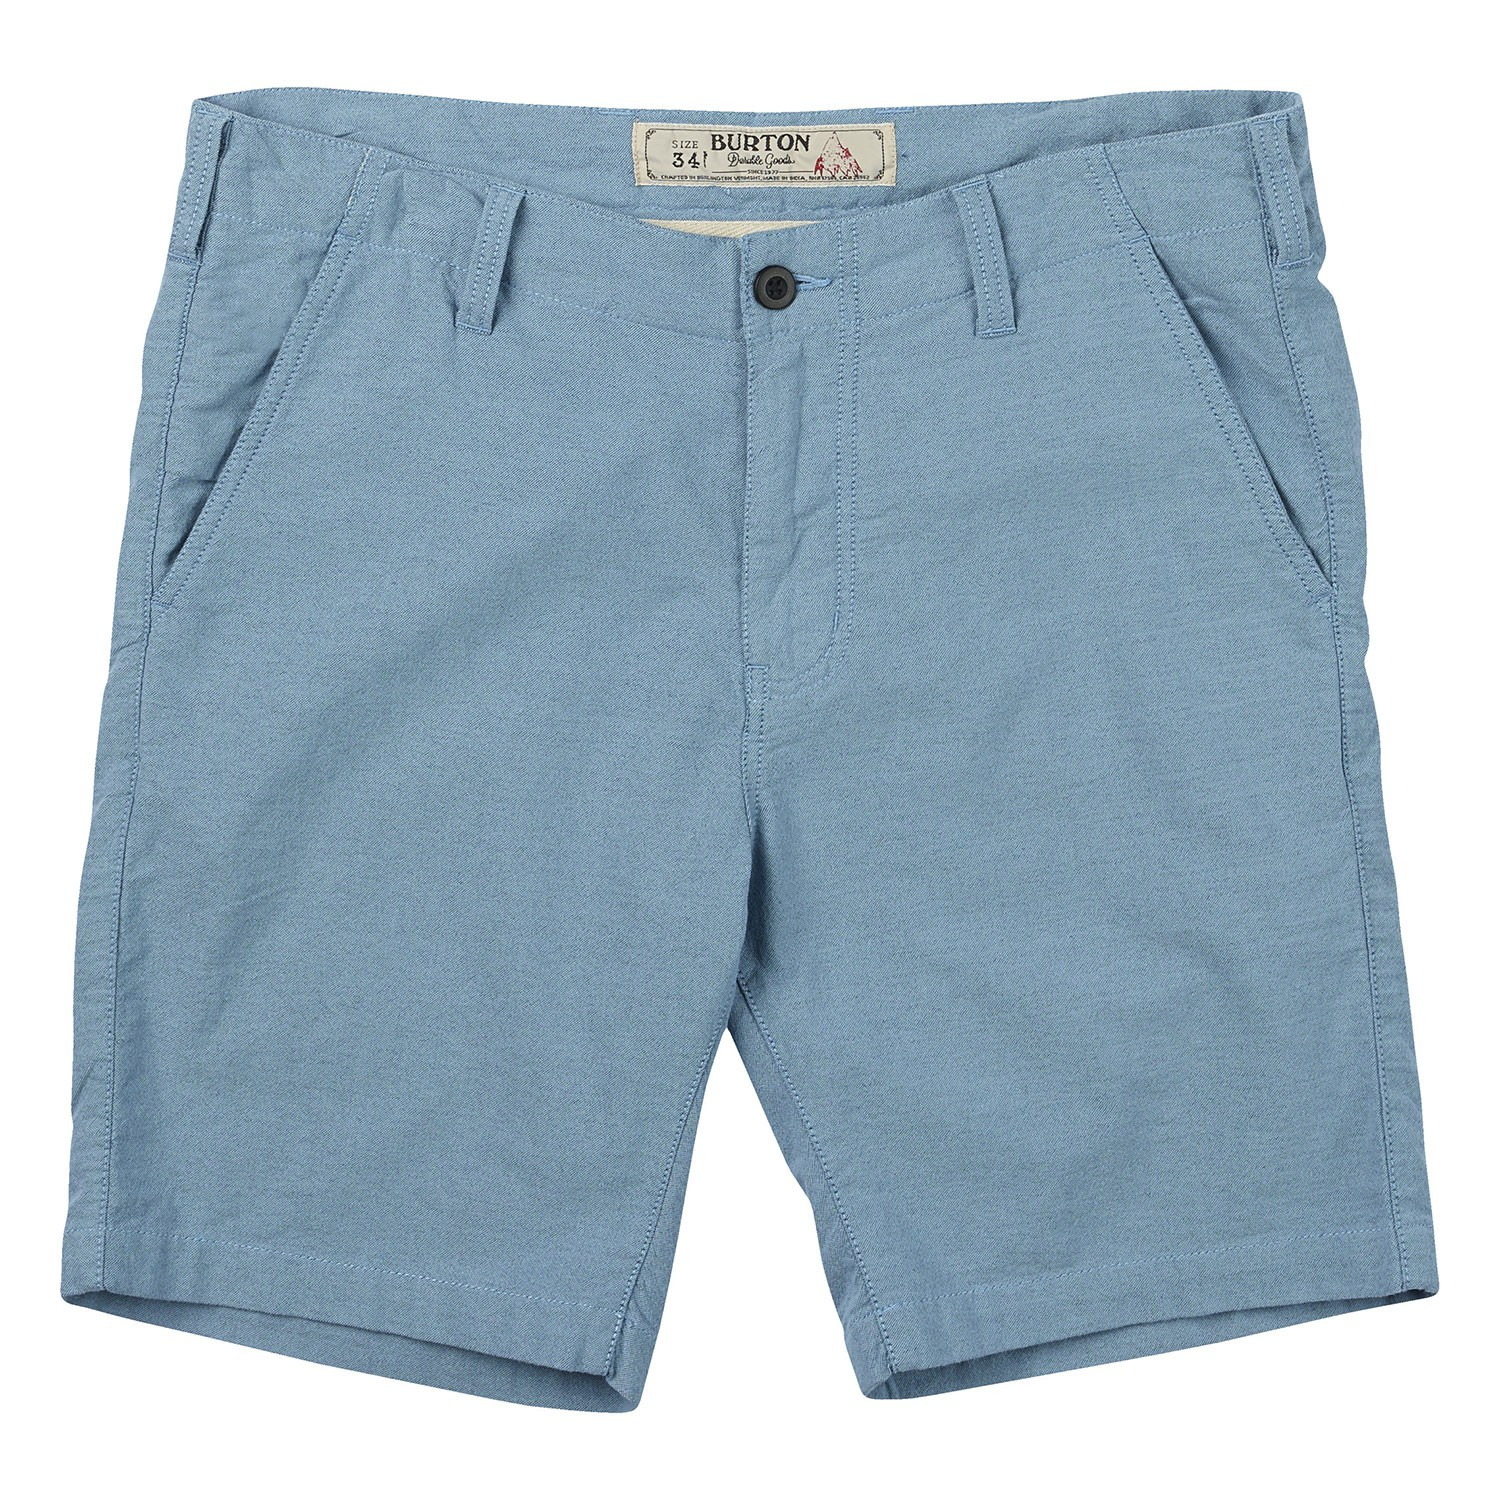 Kraťasy Burton Kingfield Short dark denim heather